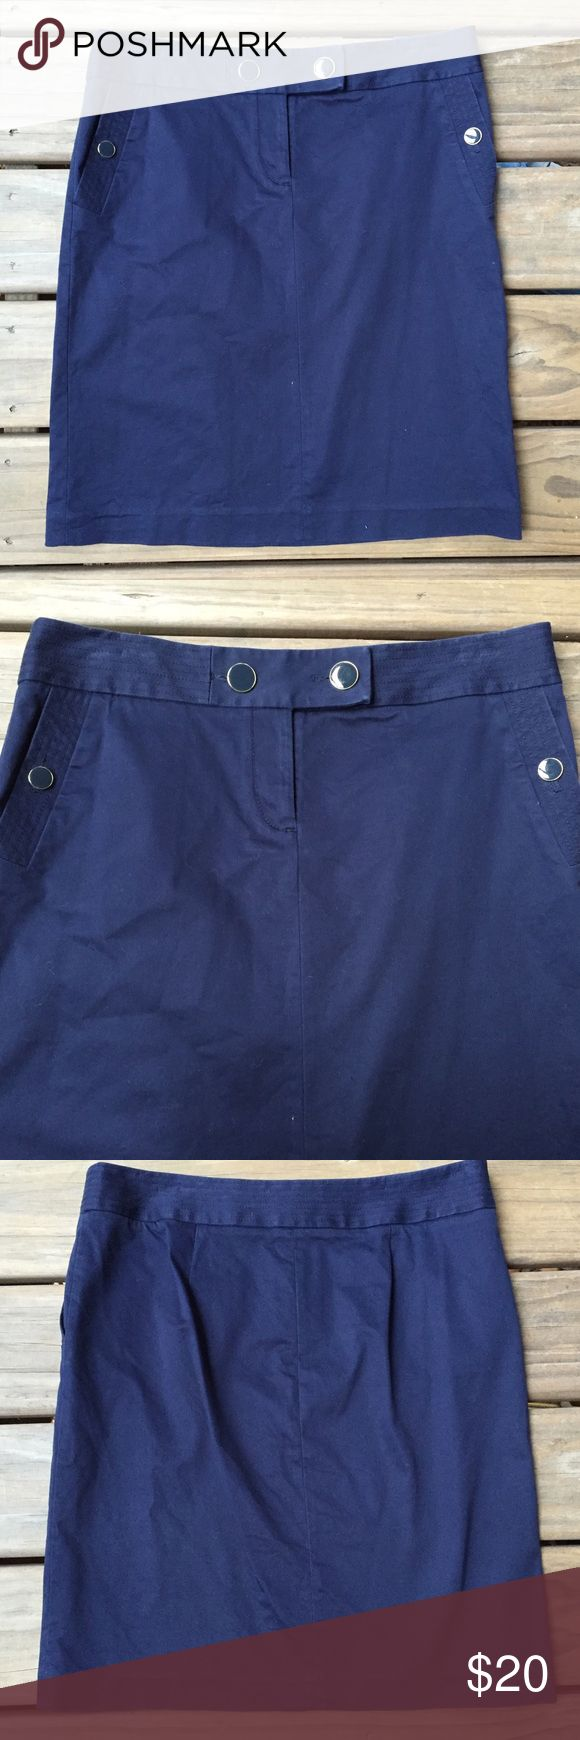 Women's J. Crew Stretch Navy Blue Pencil Skirt 10 Women's J. Crew Stretch Navy Blue Pencil Skirt Size 10 Perfect for work or going out! Great in any season. Cute buttons! Excellent condition. No stains or flaws. J. Crew Skirts Pencil